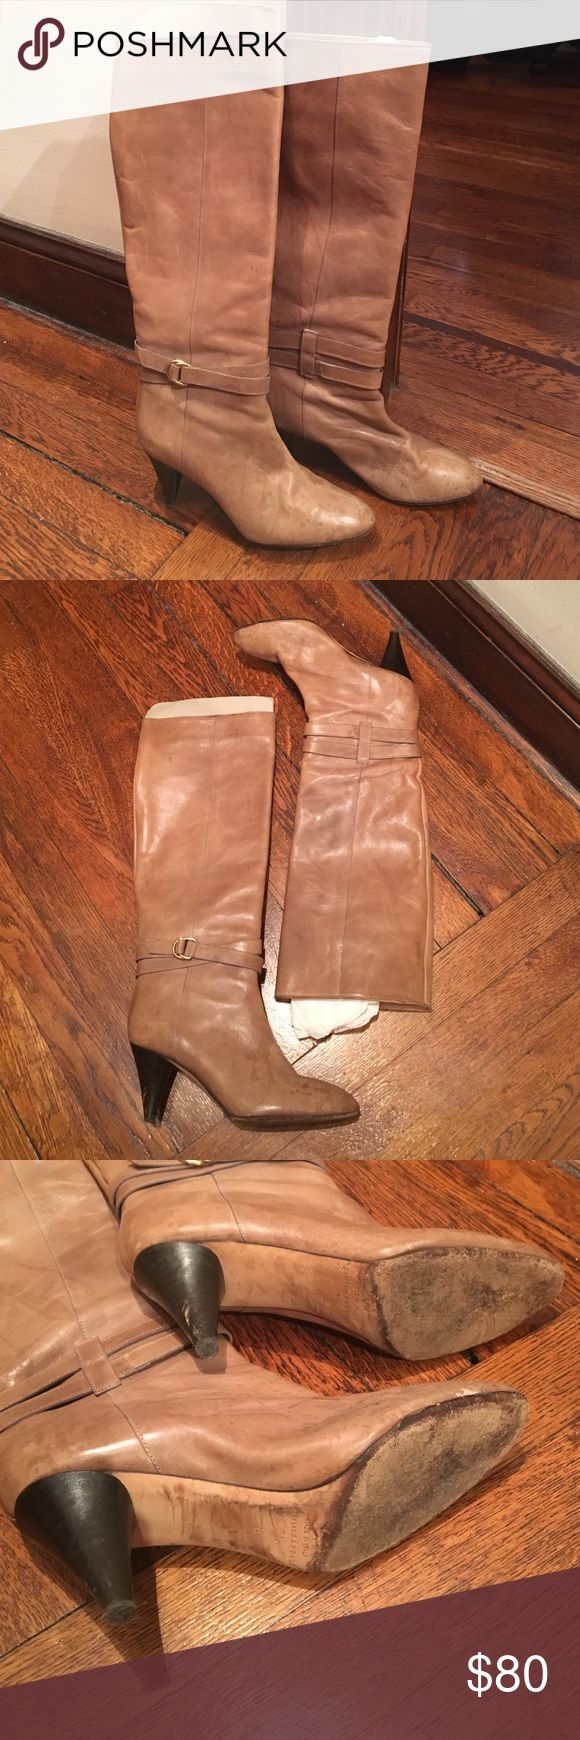 """Loeffler Randall tan leather boots Loeffler Randall tan leather boots. 2.5"""" heels, cute buckle detail. All leather made in Italy. No zipper. Boots are pull up. Water marks on the toe area, but leather is in good condition. Loeffler Randall Shoes Heeled Boots"""